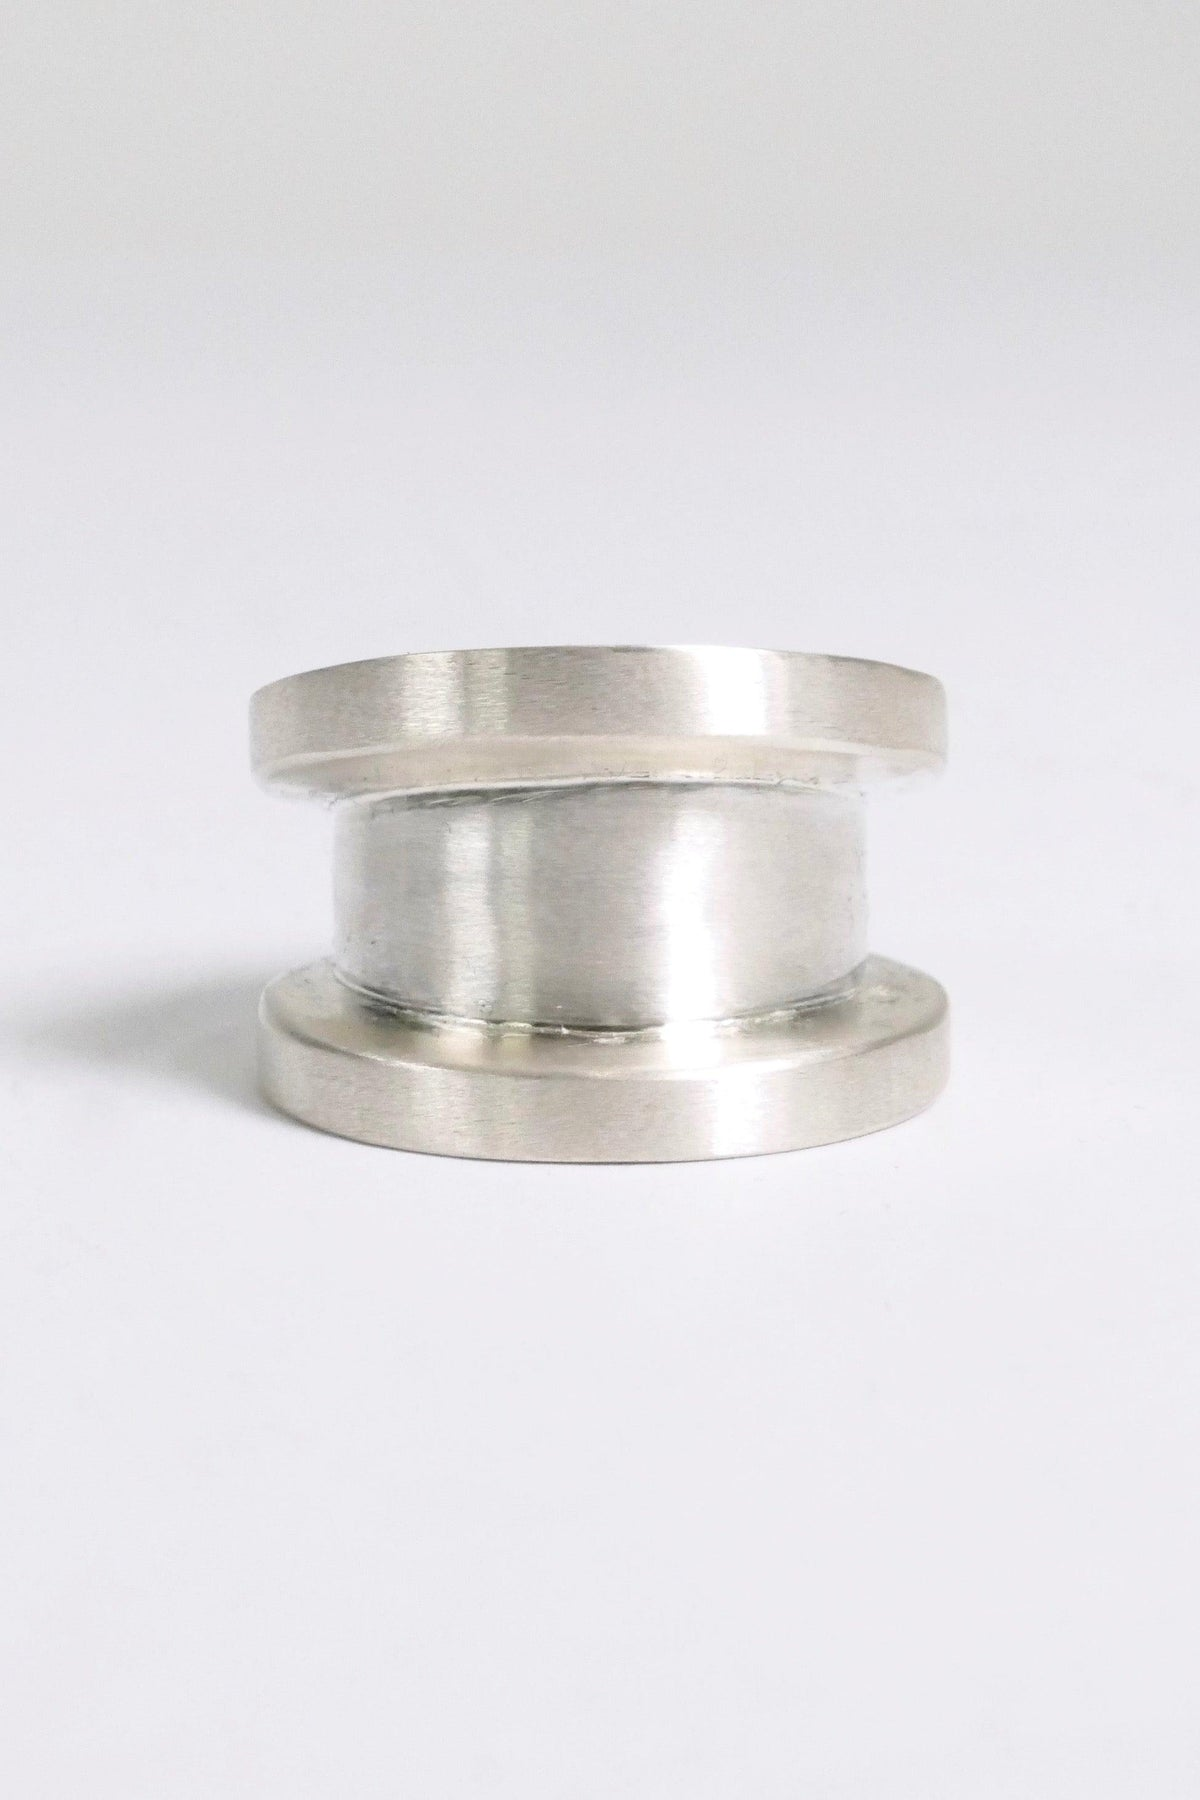 Parts of Four Ring Wide Chasm V2 Matte Sterling